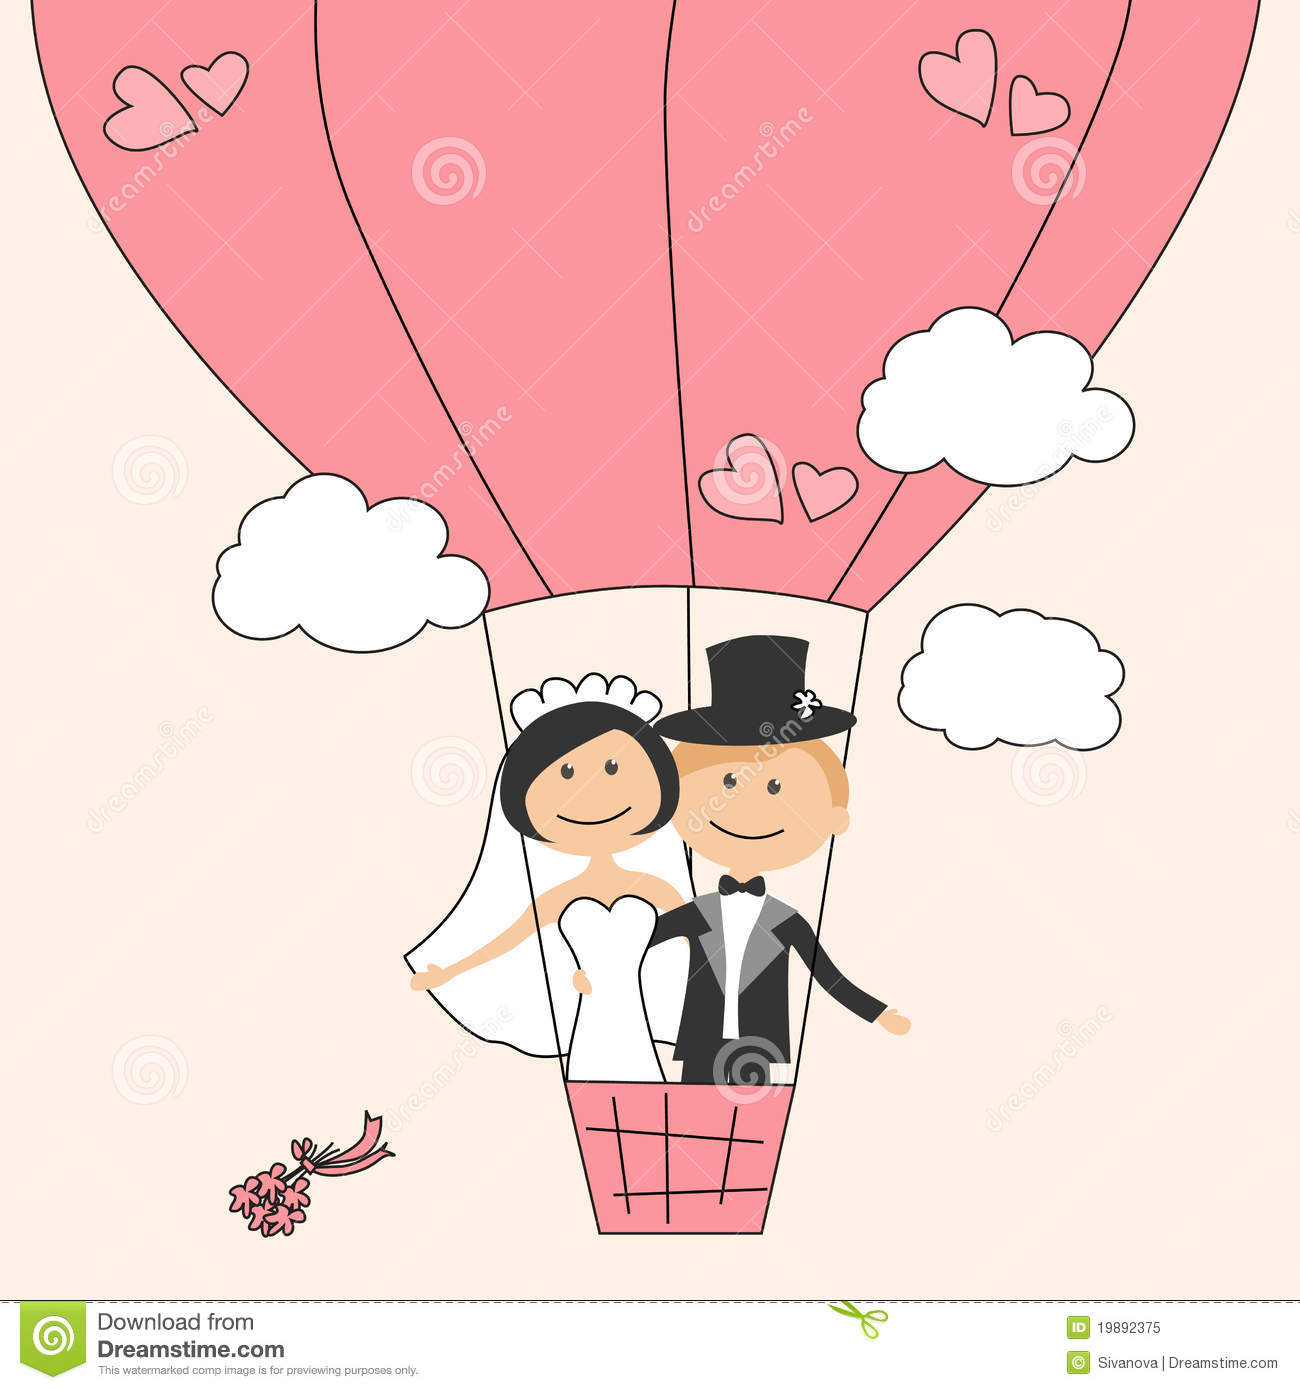 Bride And Groom Wedding Invitations is great invitations template